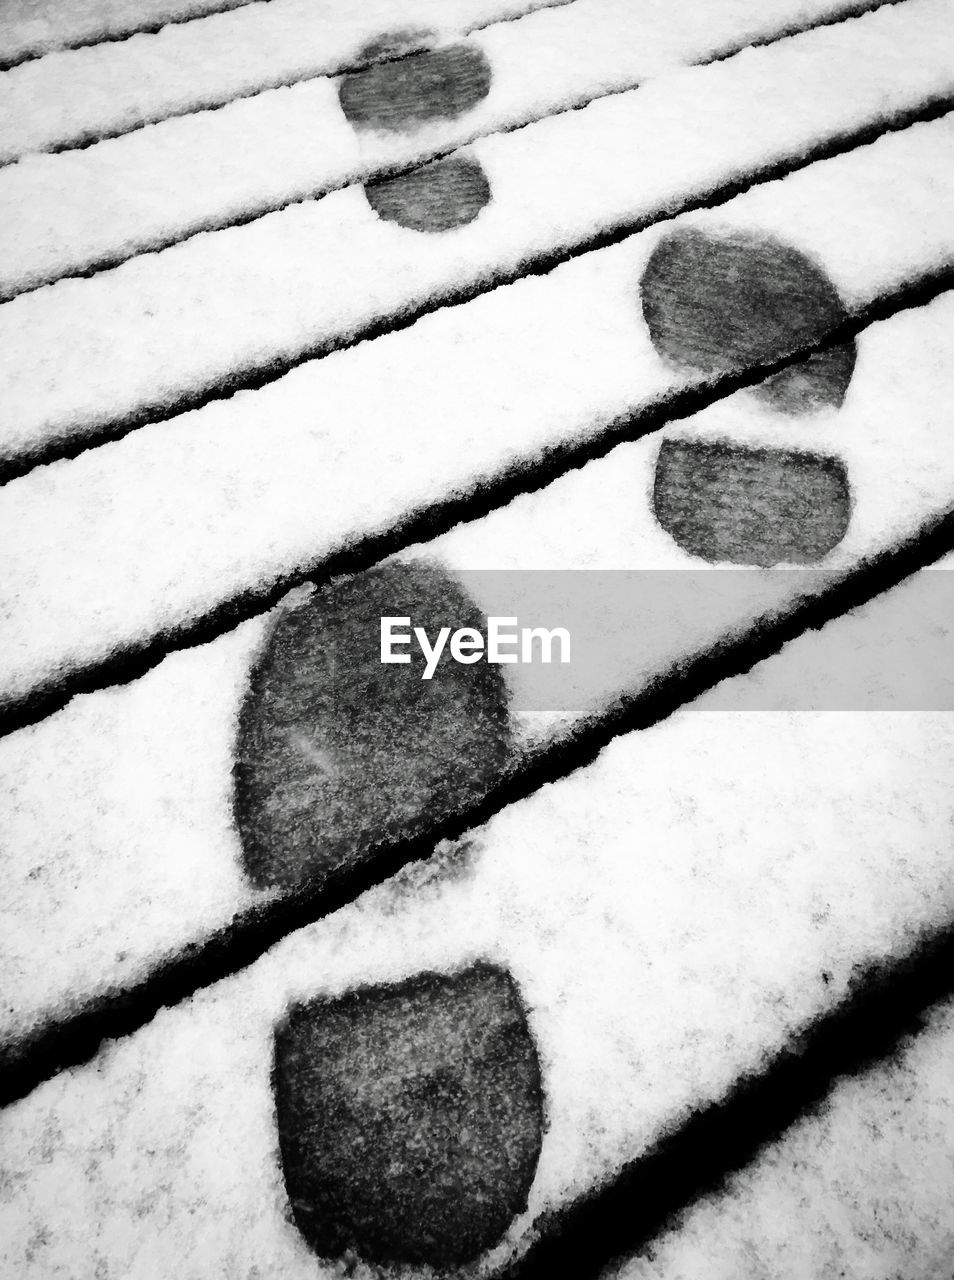 snow, winter, cold temperature, weather, nature, full frame, day, no people, backgrounds, outdoors, close-up